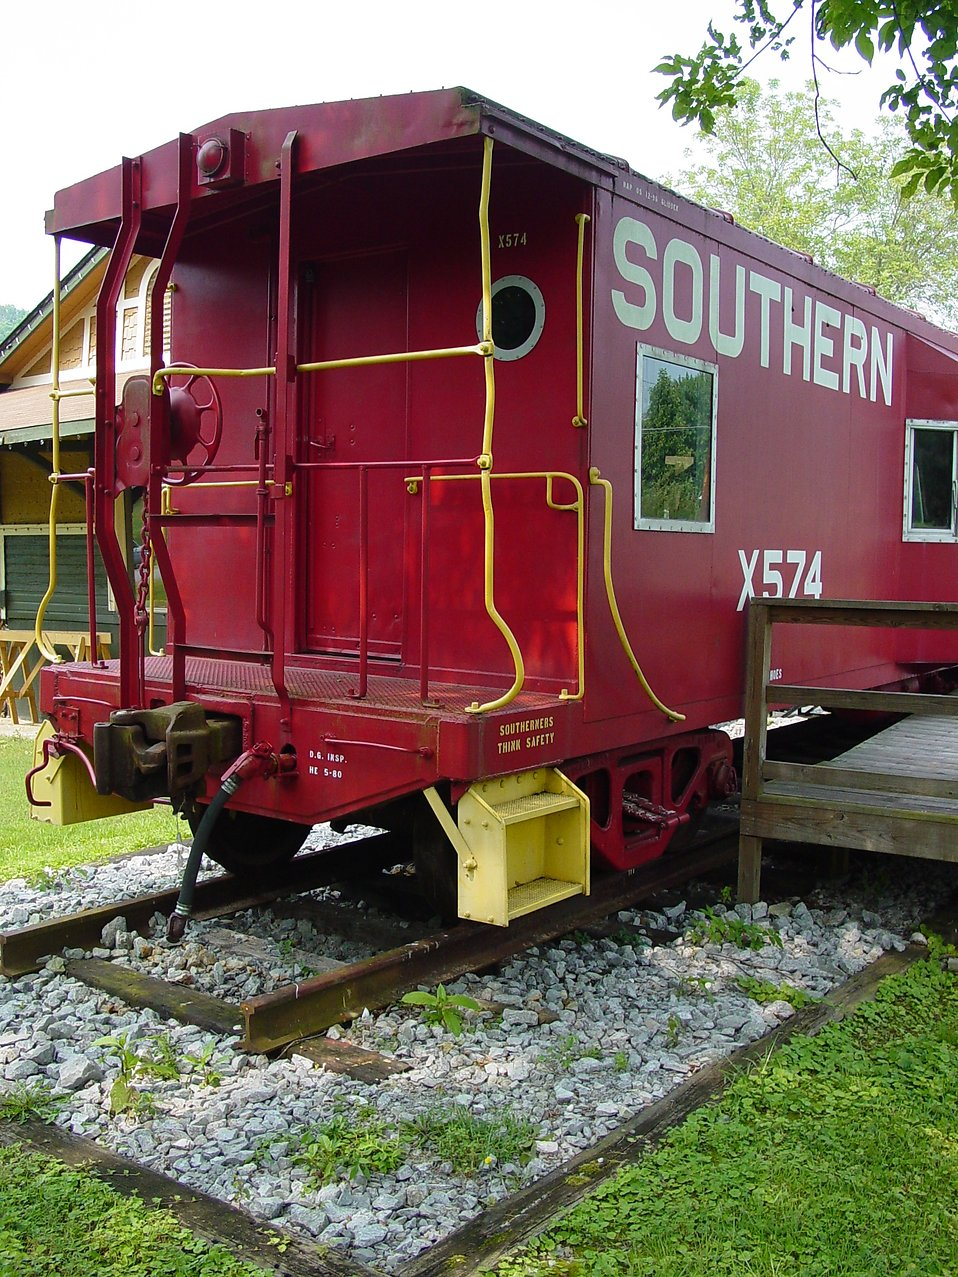 A red Southern Railway caboose : Free Stock Photo